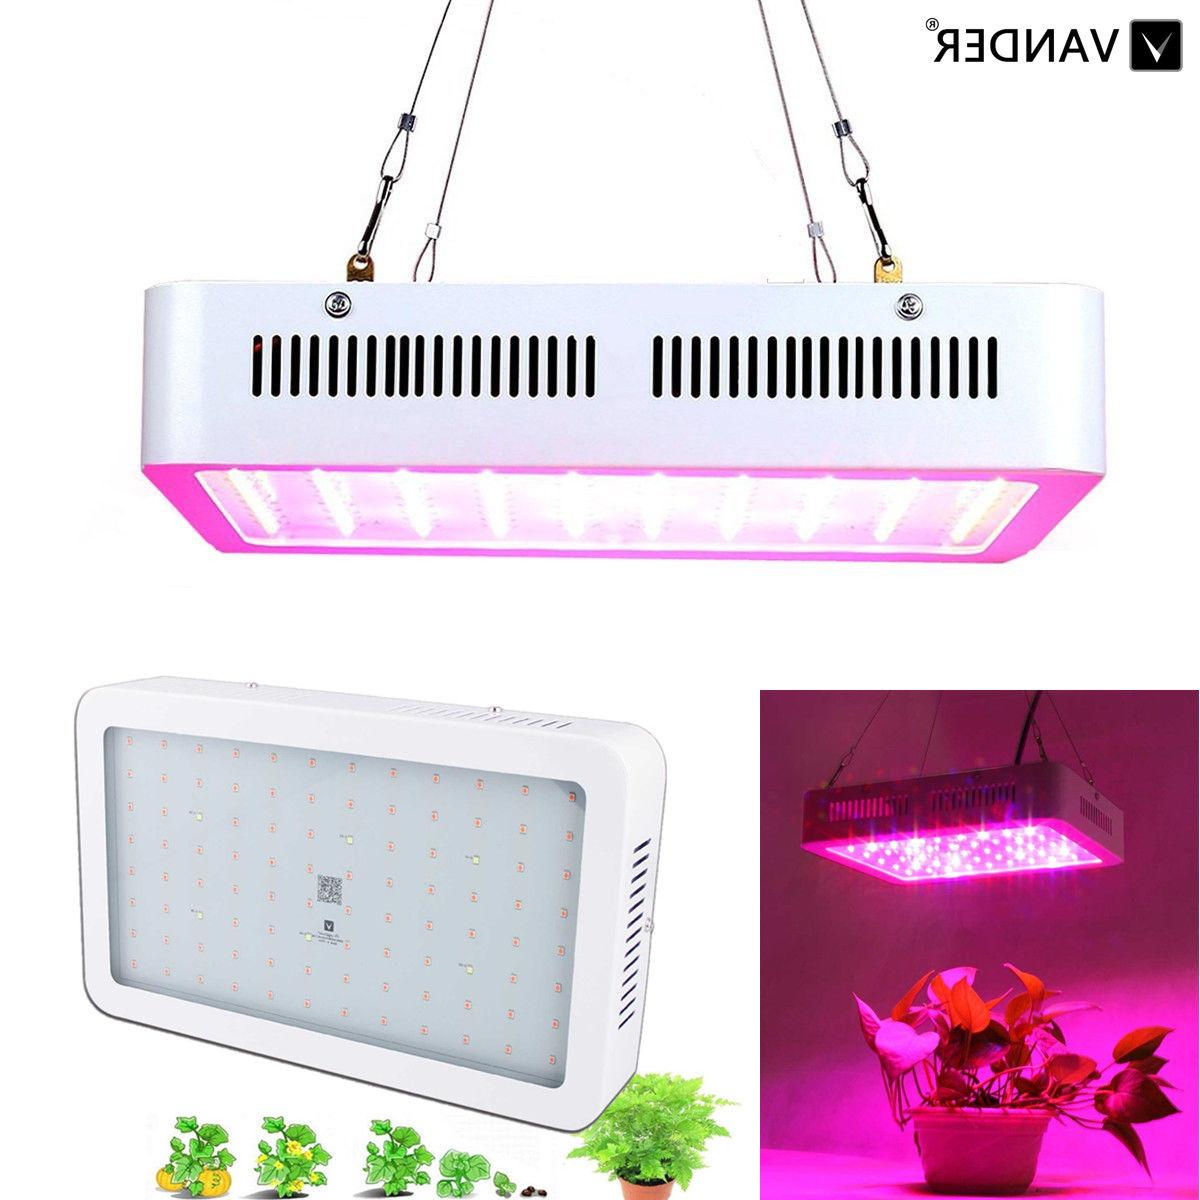 Hydro 2000W LED Grow Light Full Panel For Flower Medical